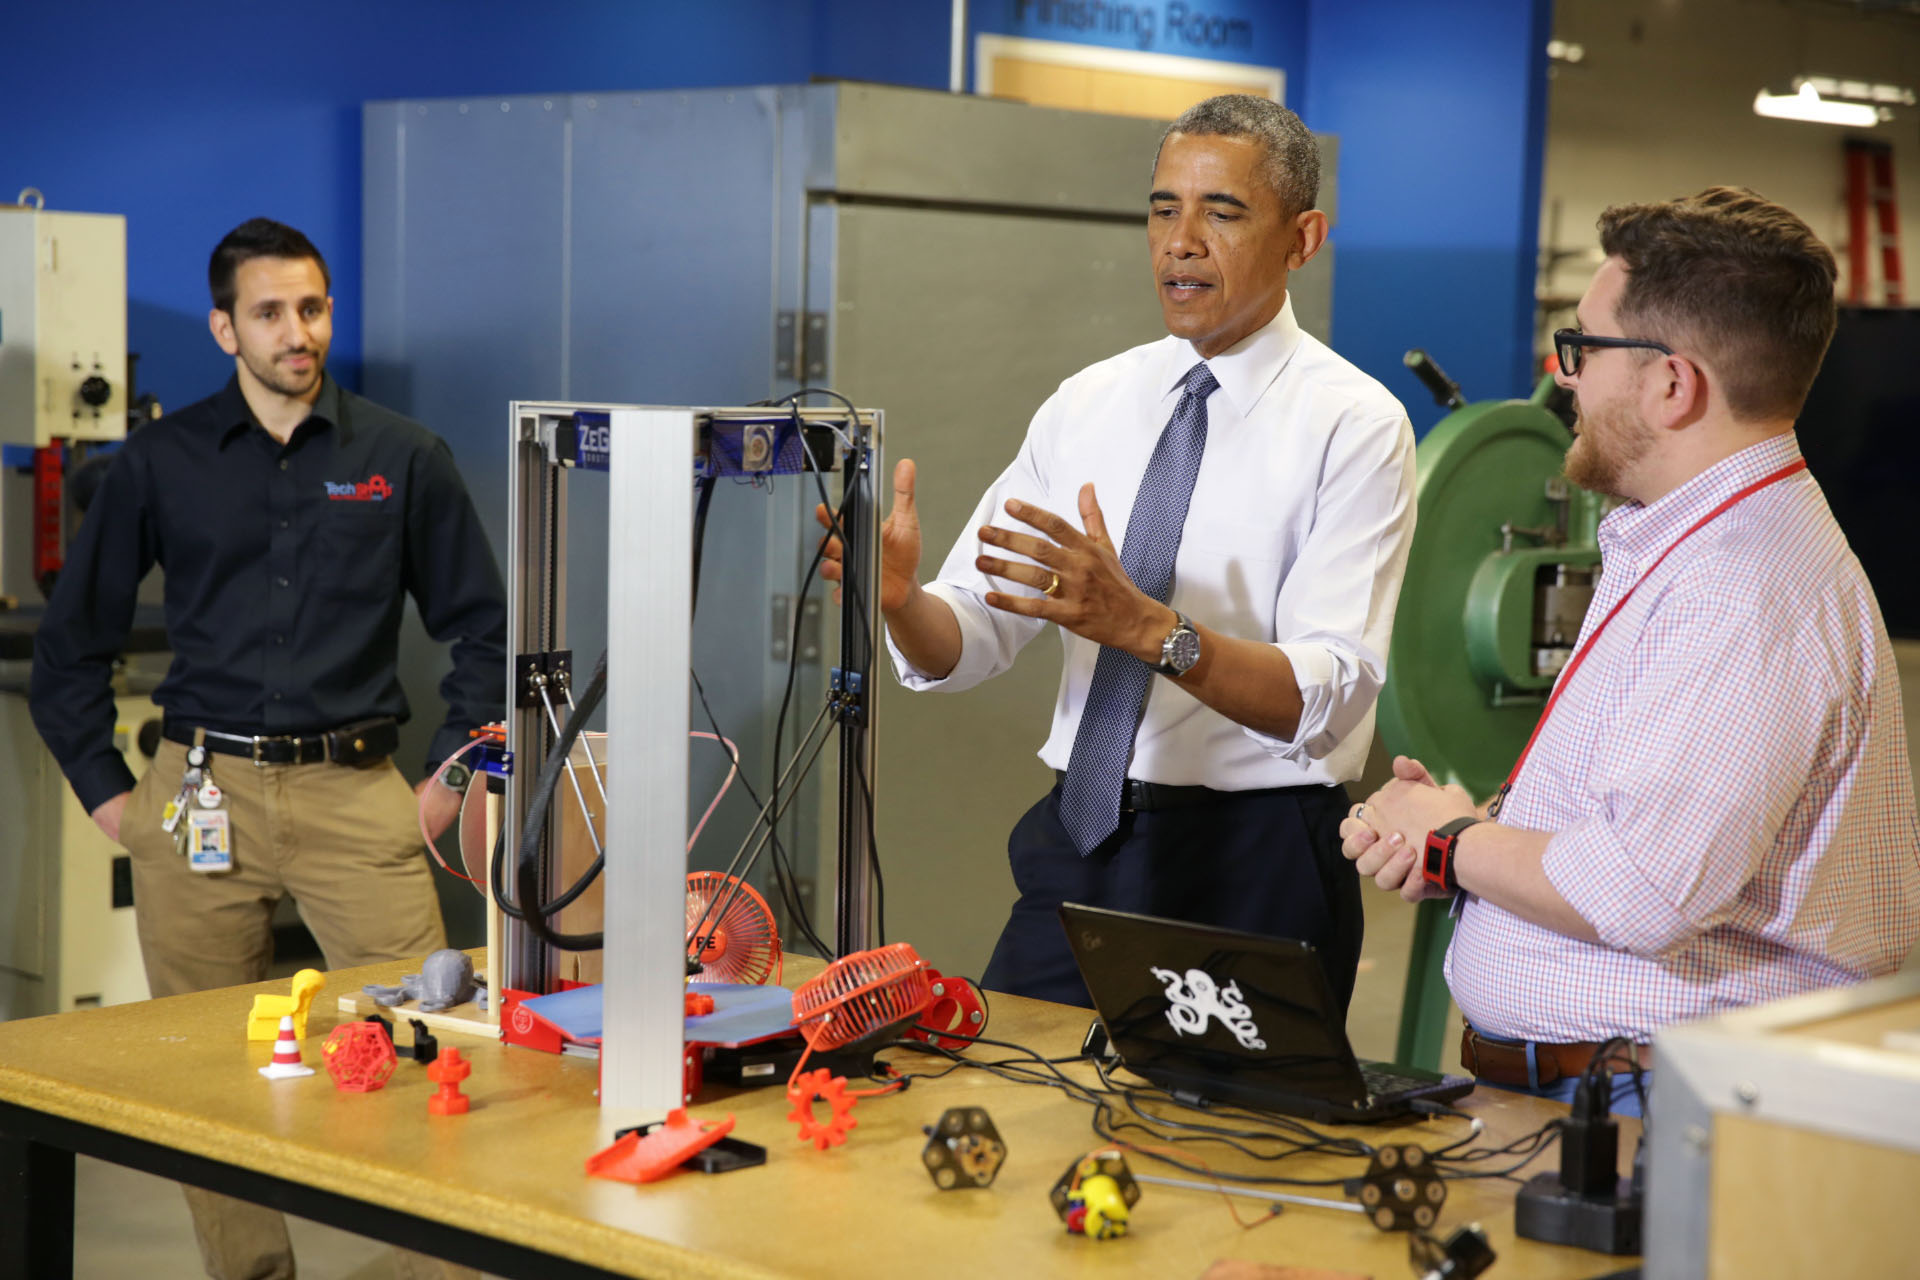 President Obama is shown a 3-D printer during a tour of TechShop Pittsburgh